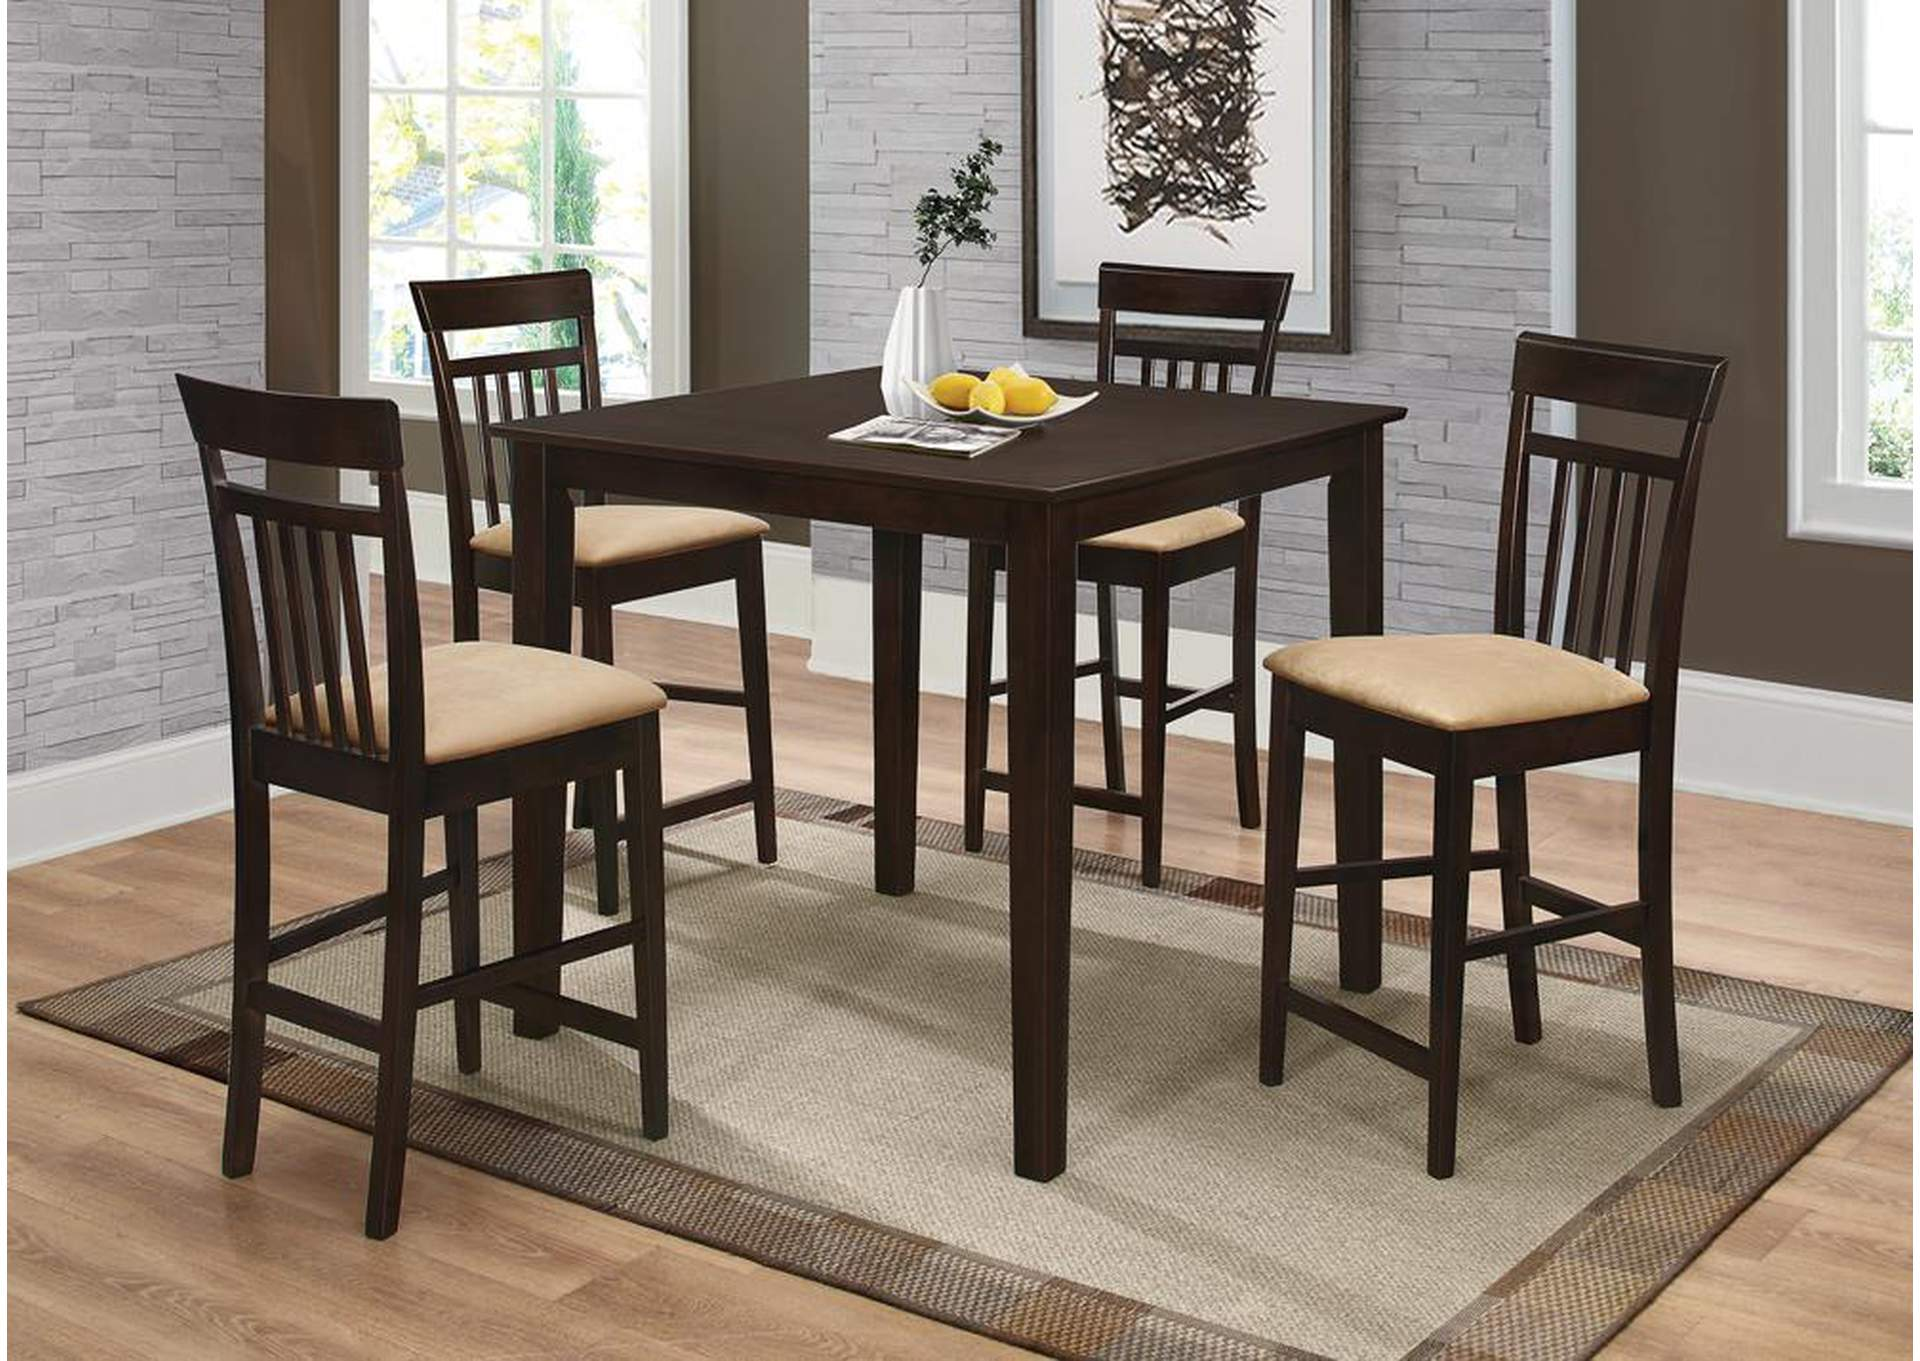 Counter Height Table/Chair 5pc Set,Coaster Furniture